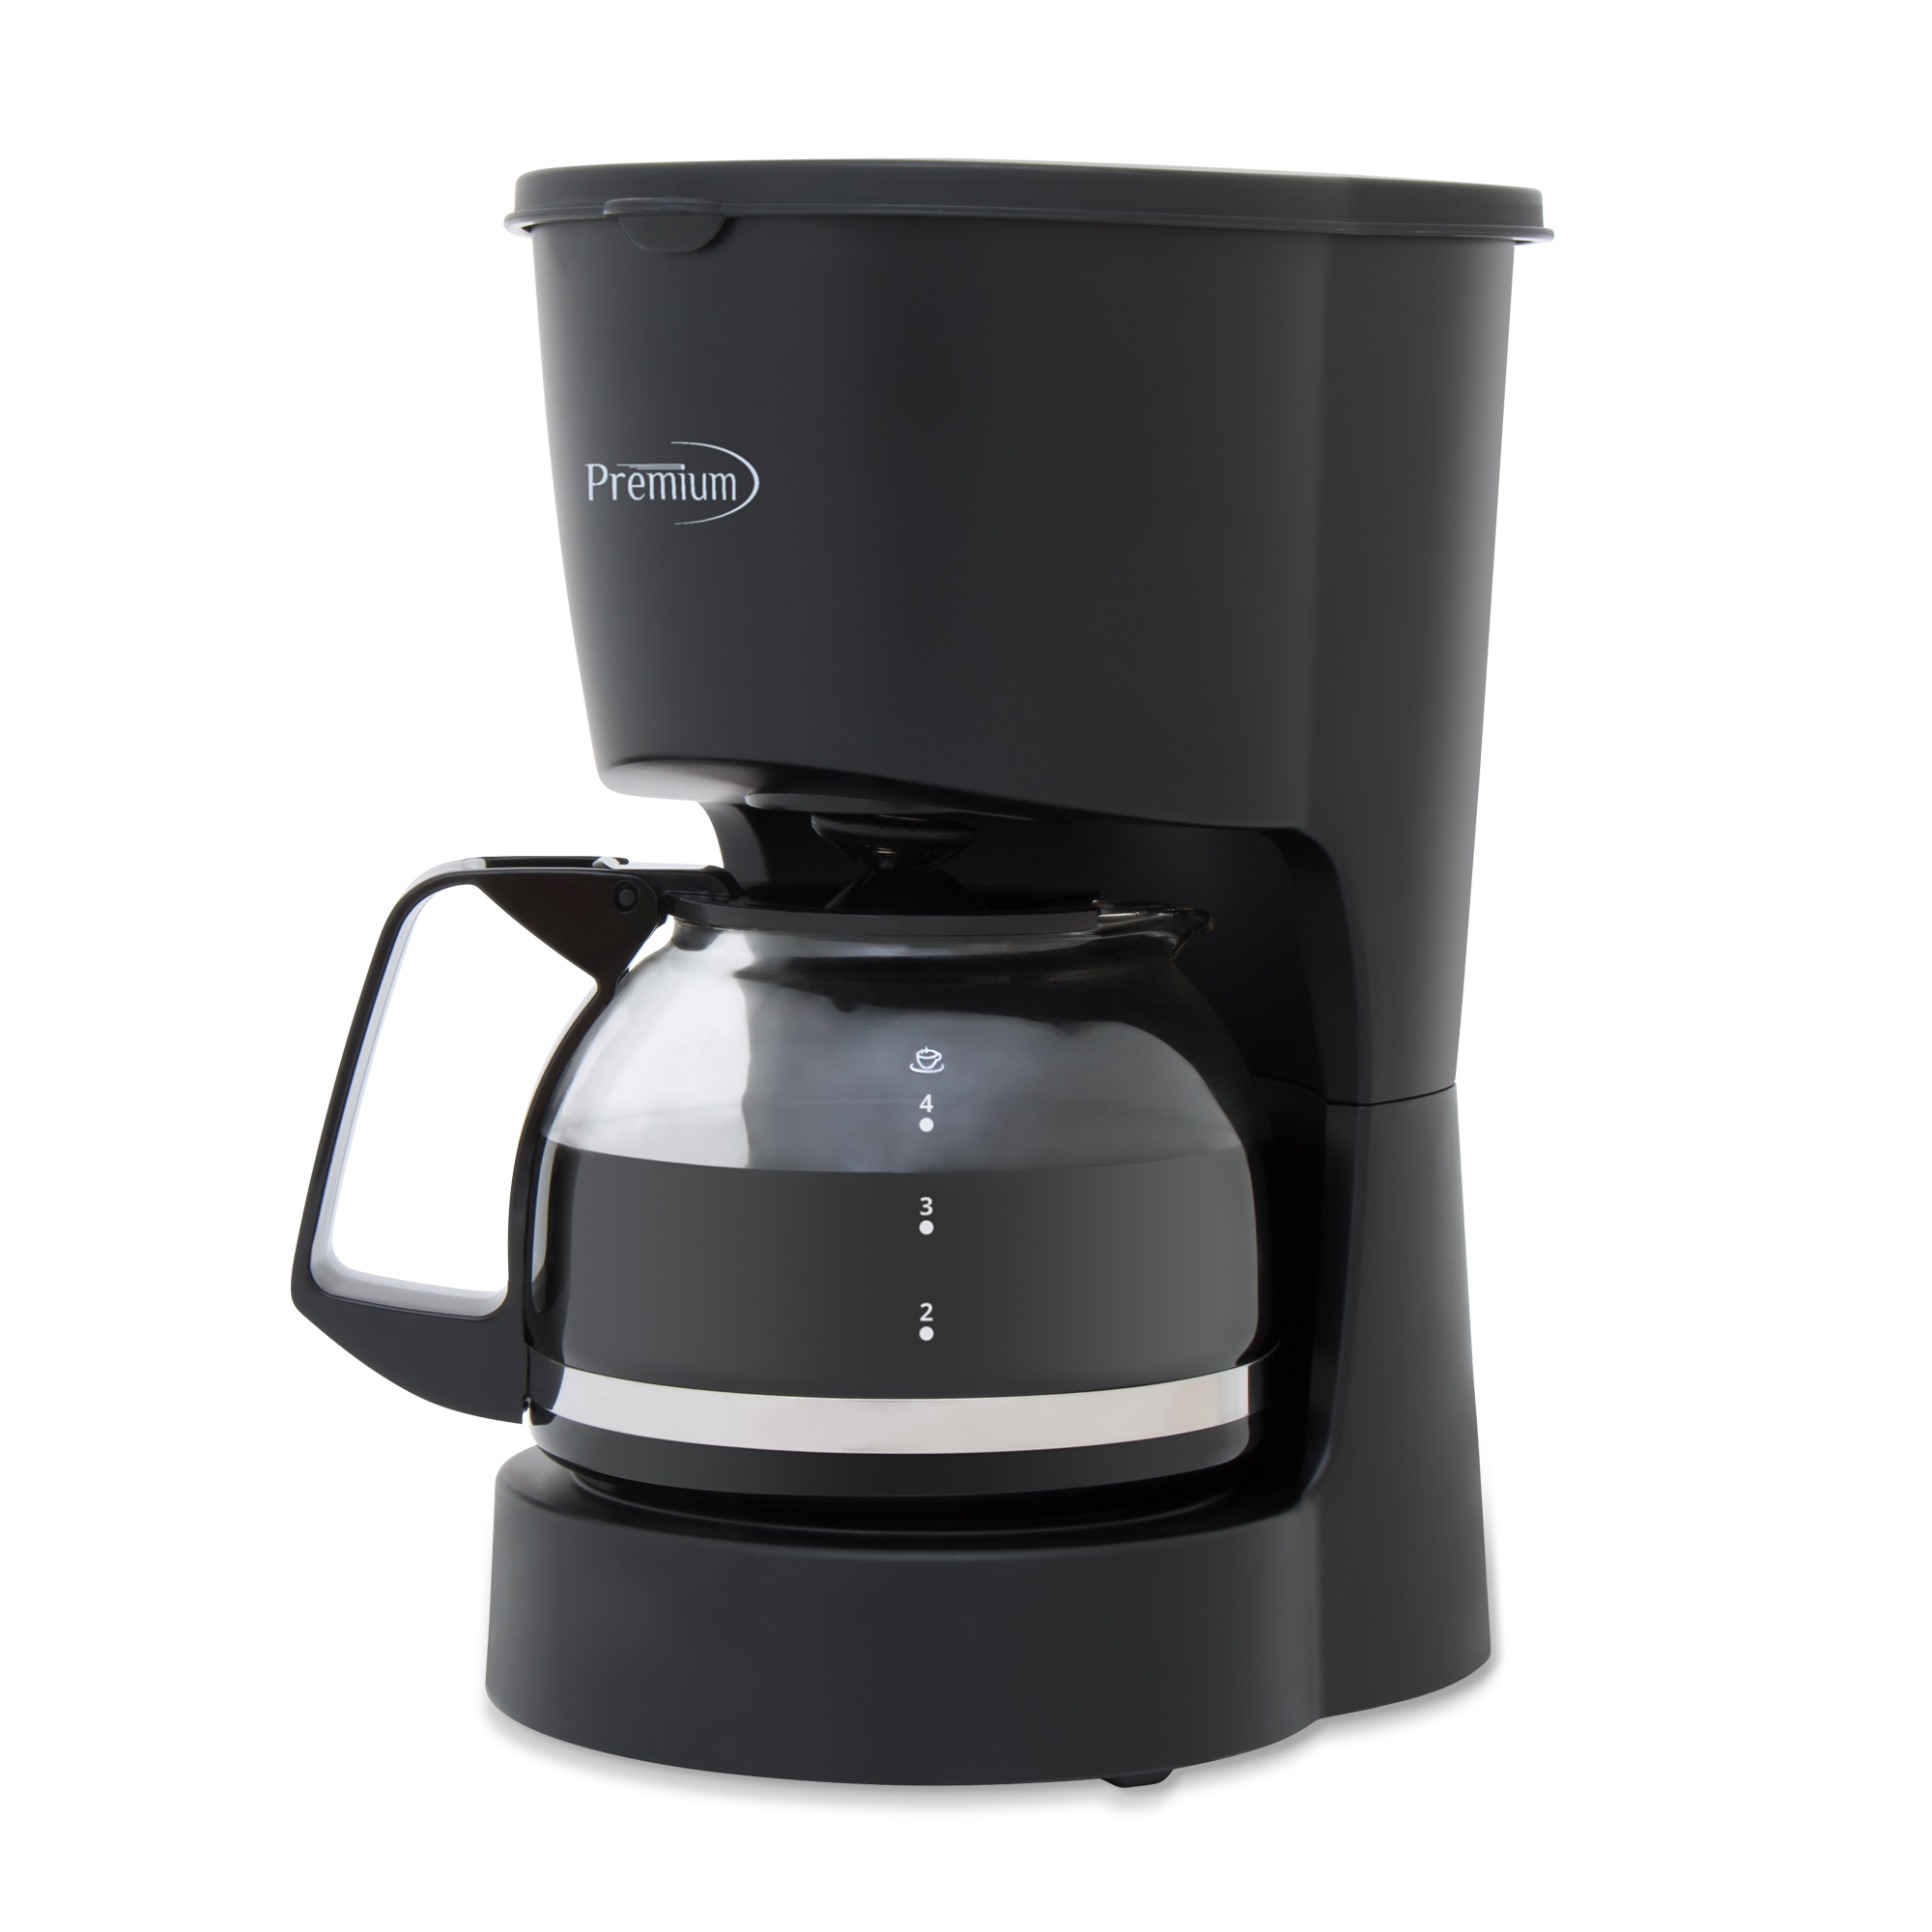 Premium Appliances 4 Cup Coffee Maker